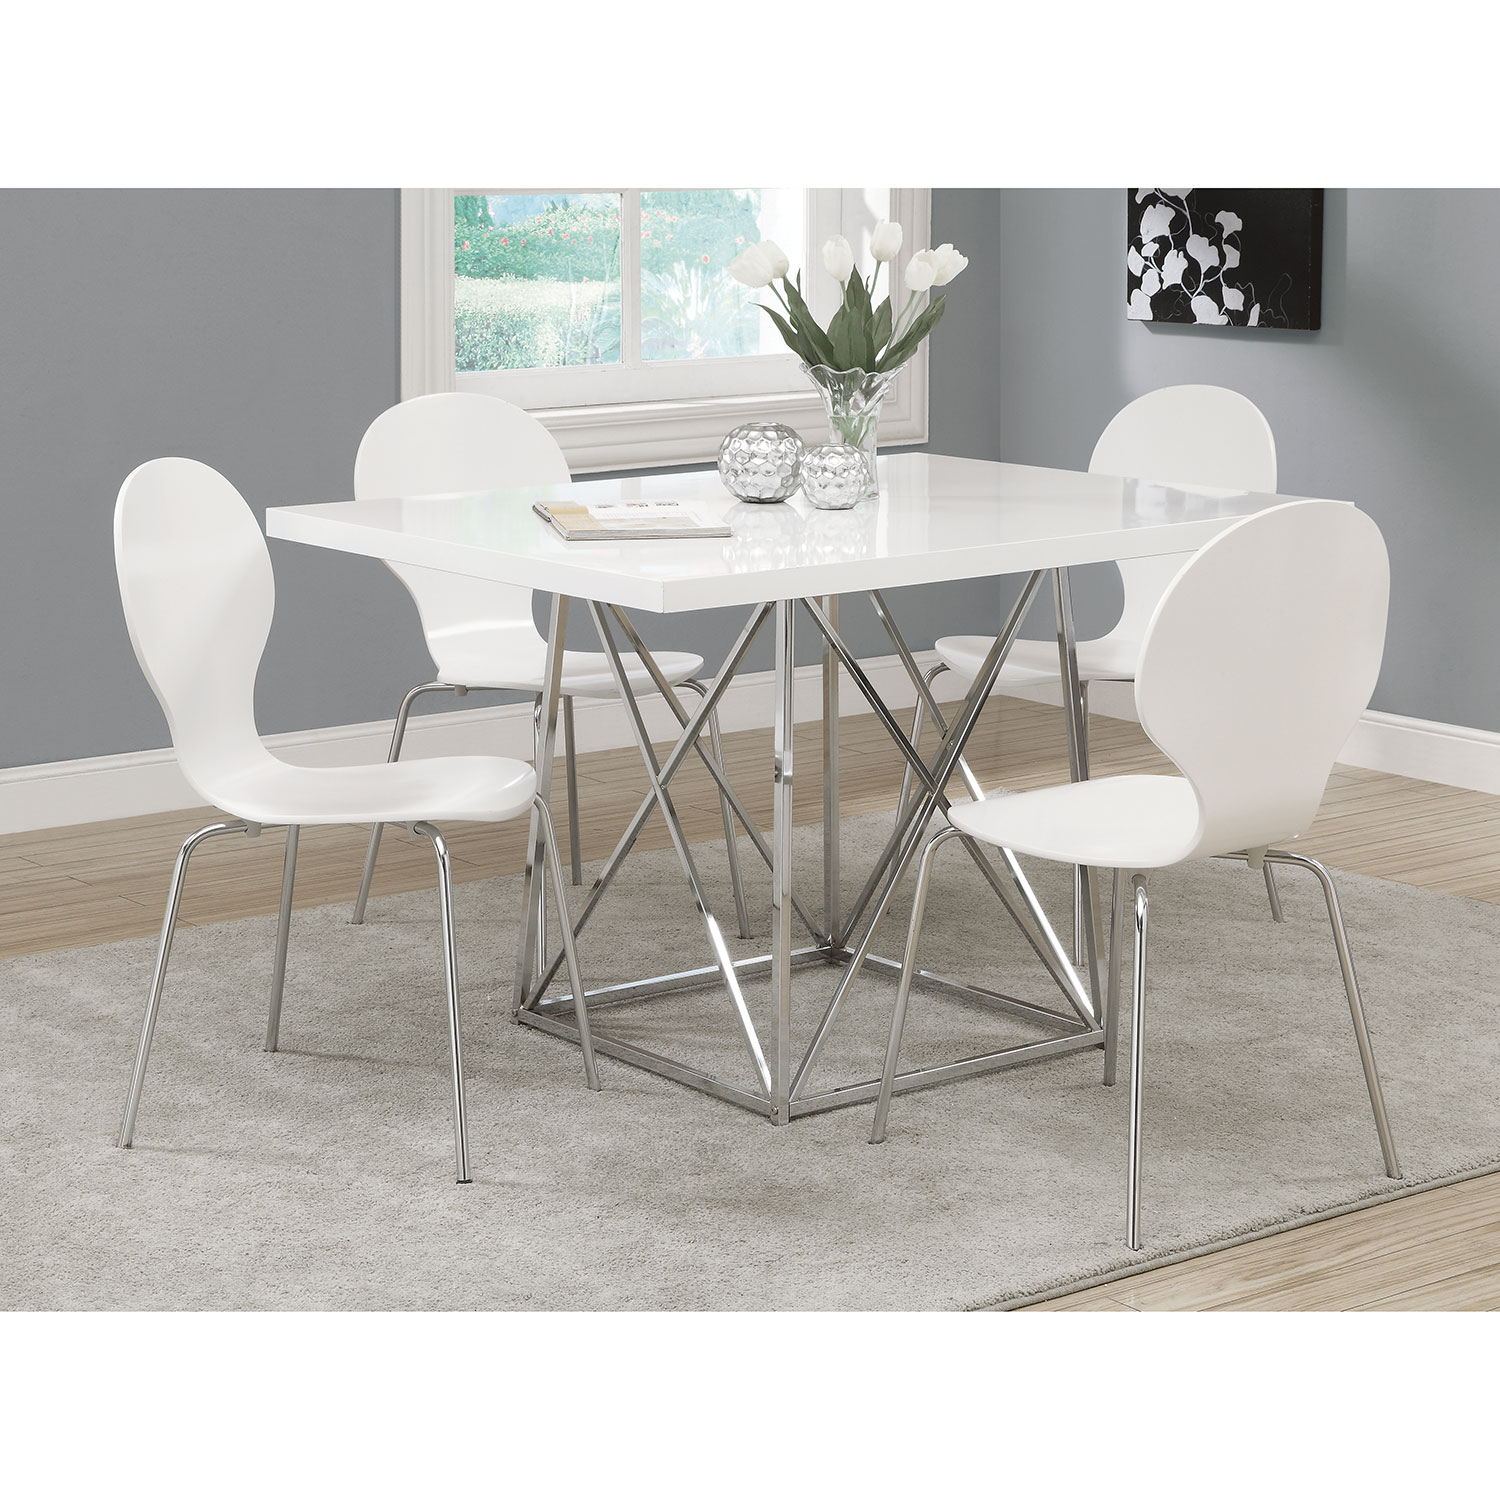 Contemporary Rectangular Dining Table   White : Dining Tables   Best Buy  Canada